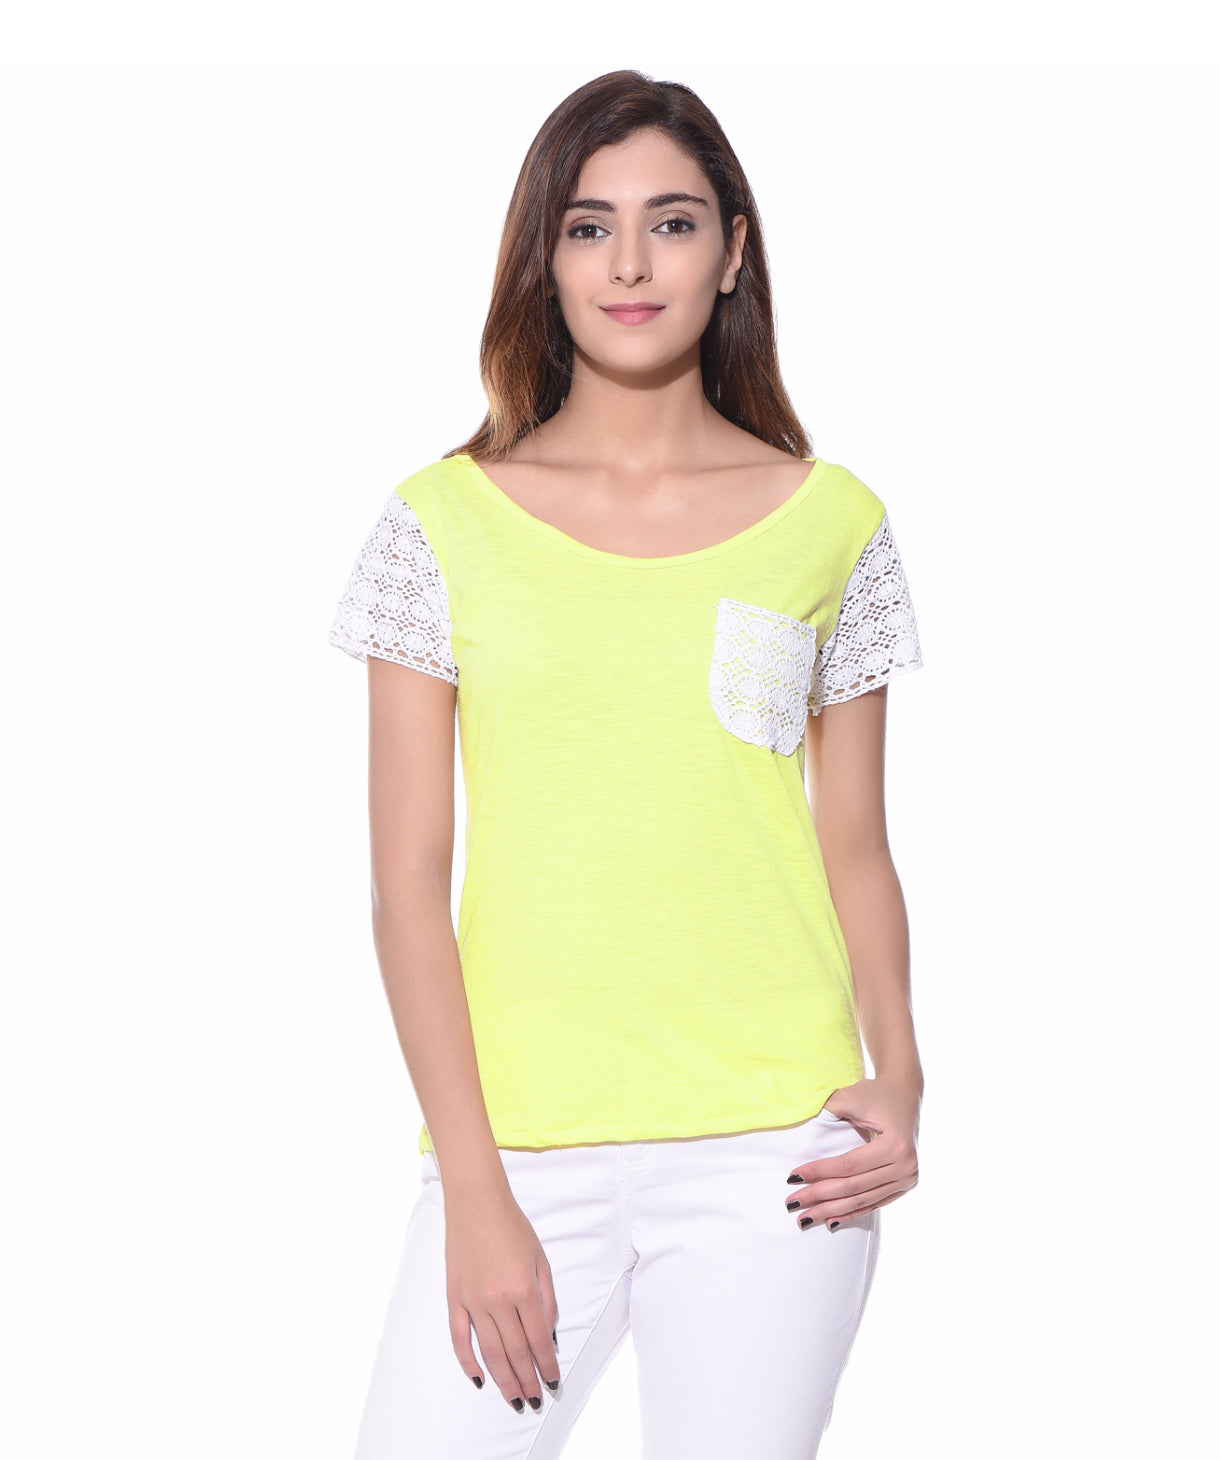 Uptownie Plus Solid Yellow Lace Sleeved Top. FLAT 200 OFF